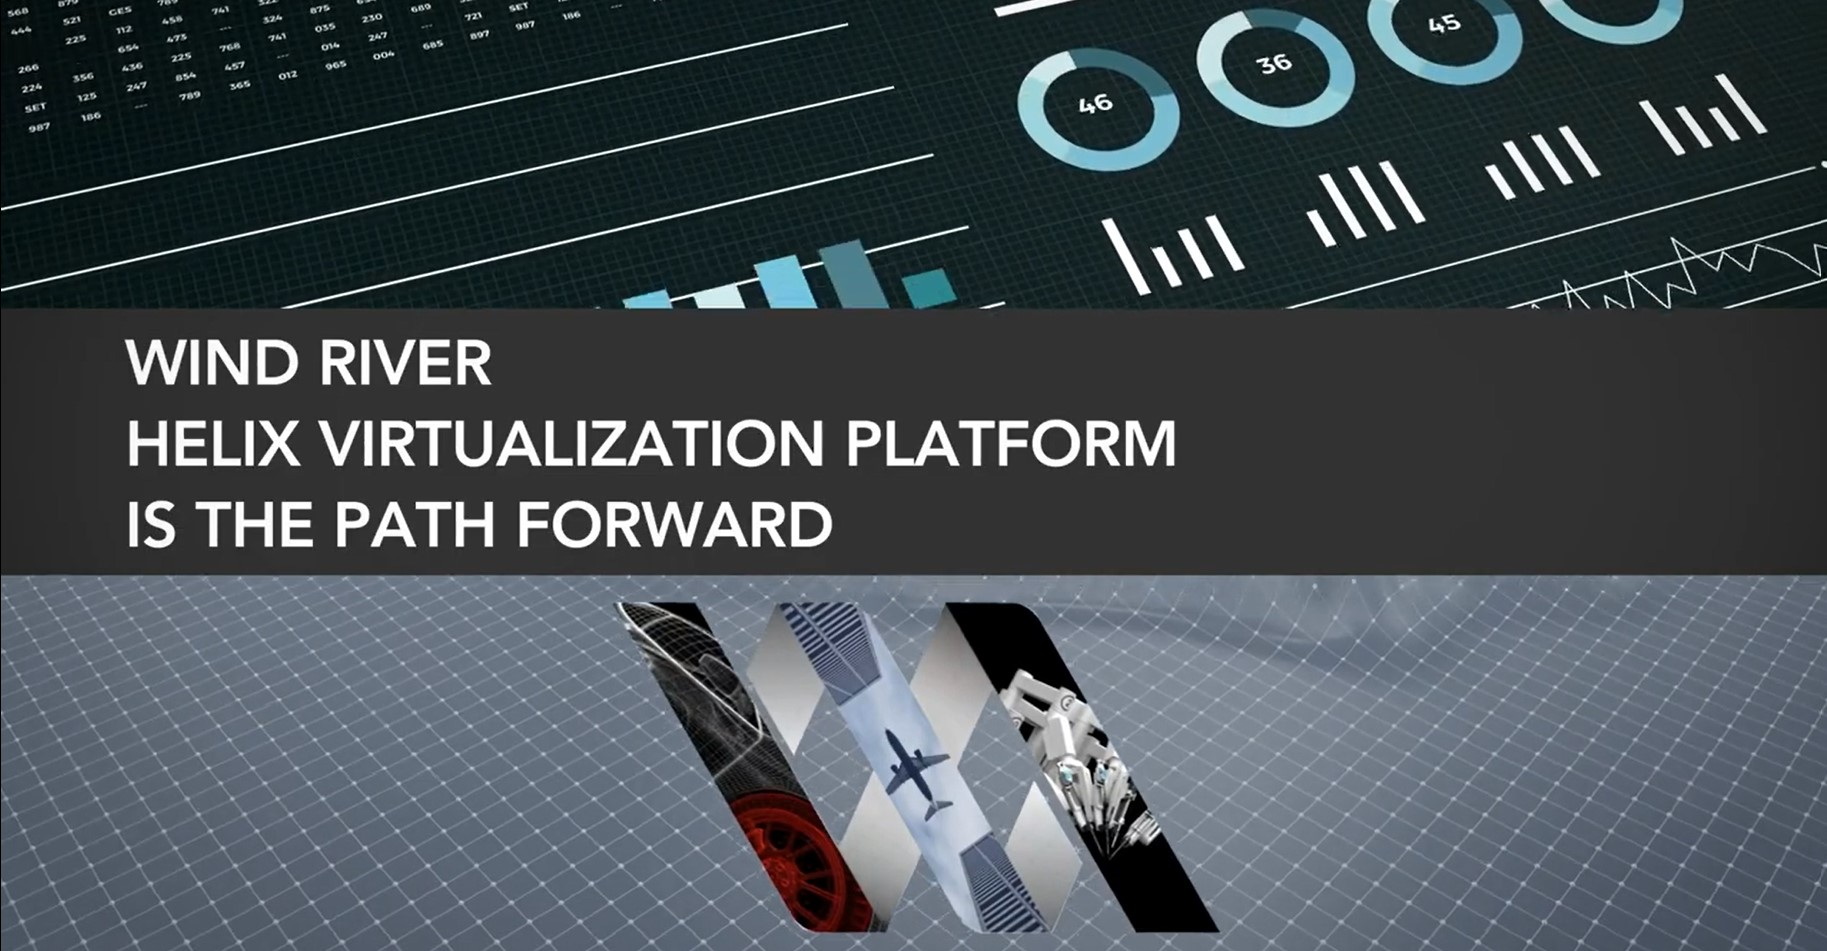 Wind River Helix Virtualization Platform Overview